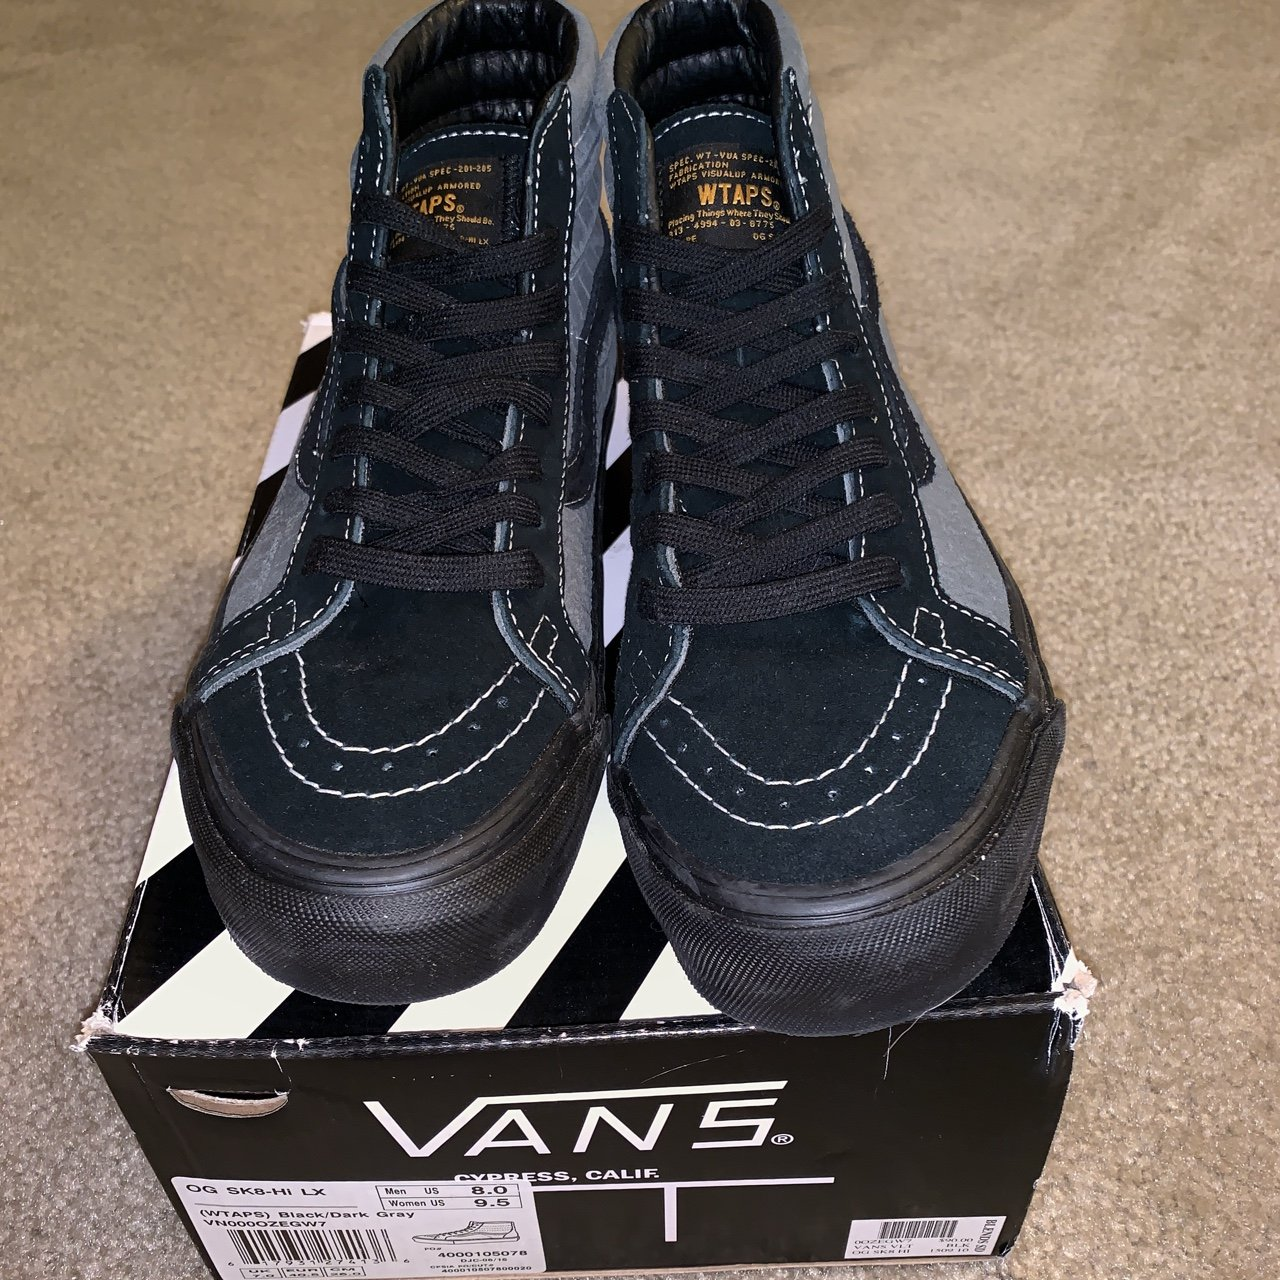 6fe3127c30 Vans OG Sk8 Hi LX WTAPS Black Dark Gray. Men s size 9.5. in - Depop